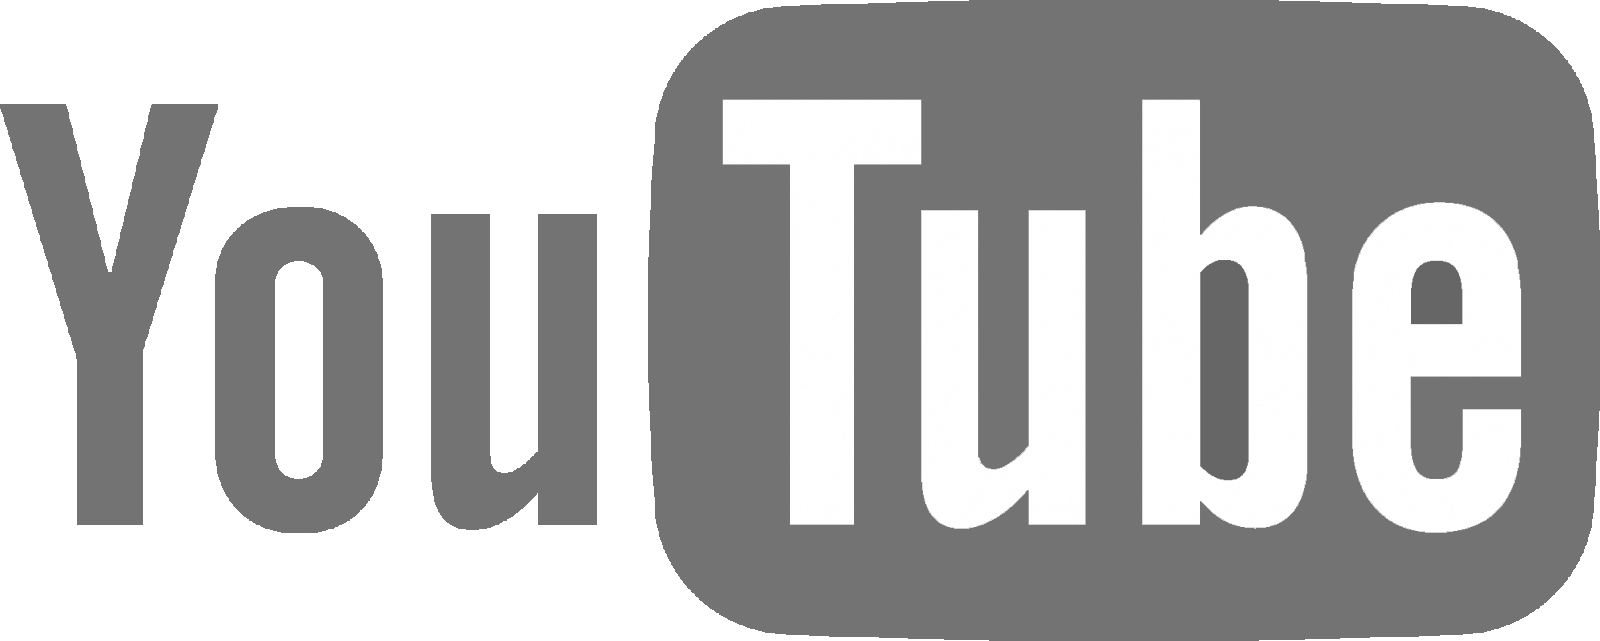 Youtube logo grey e2ba79